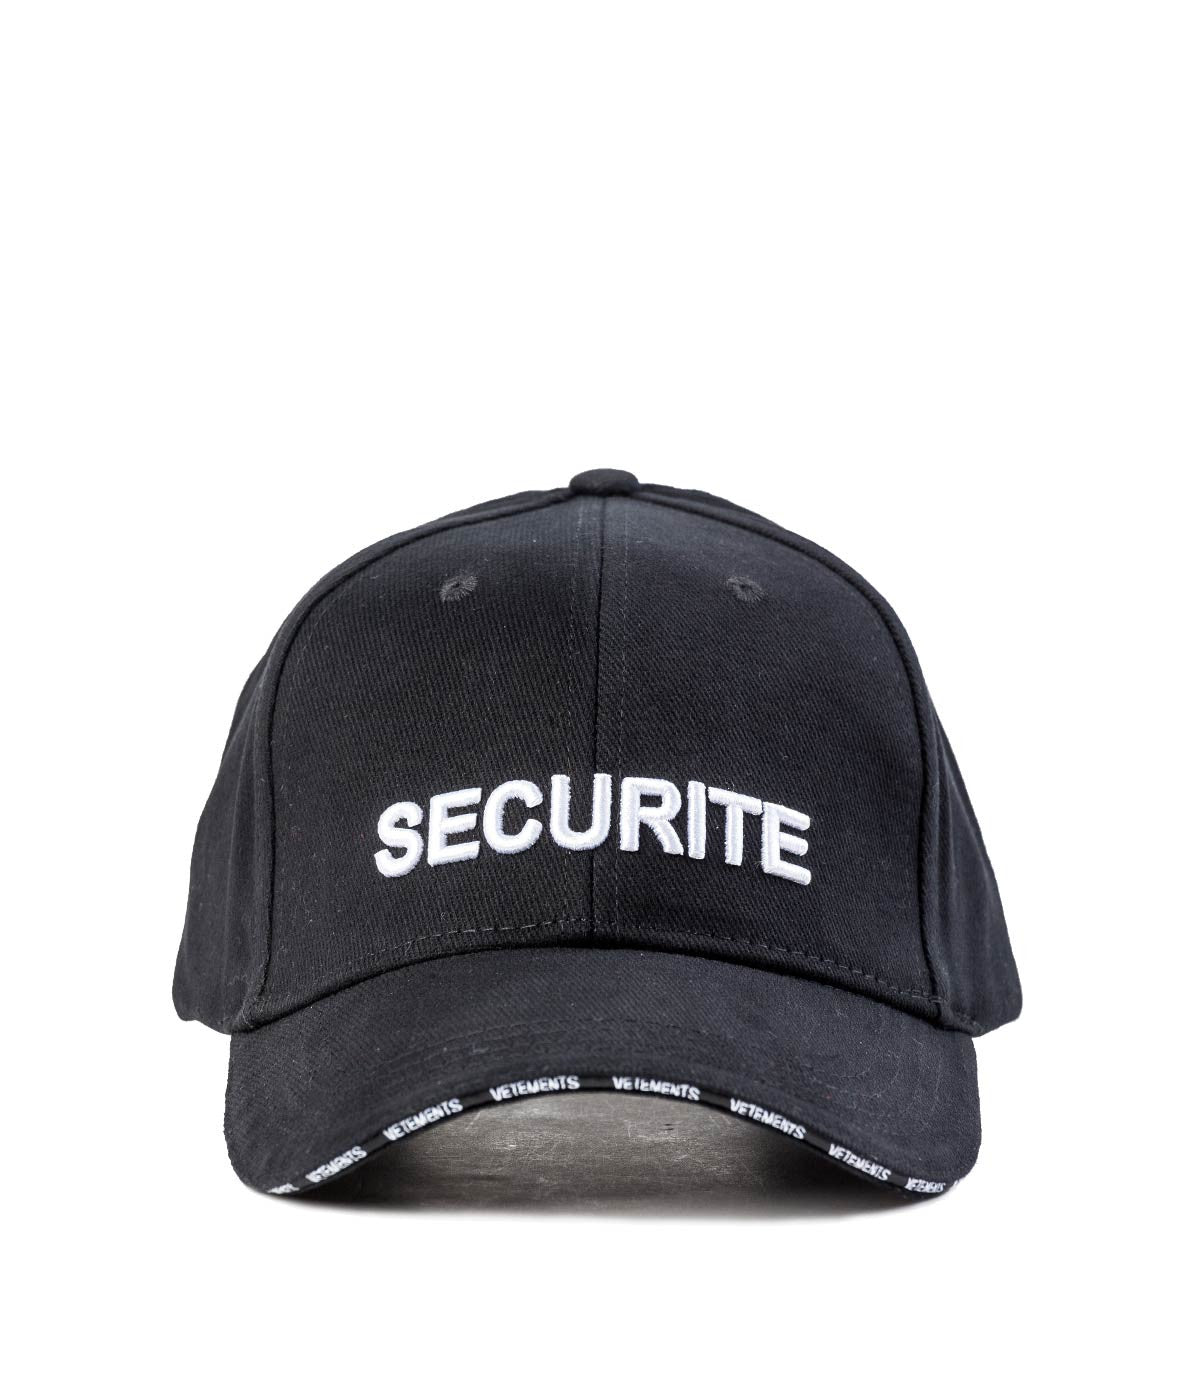 Kawasaki Black Securite Cap